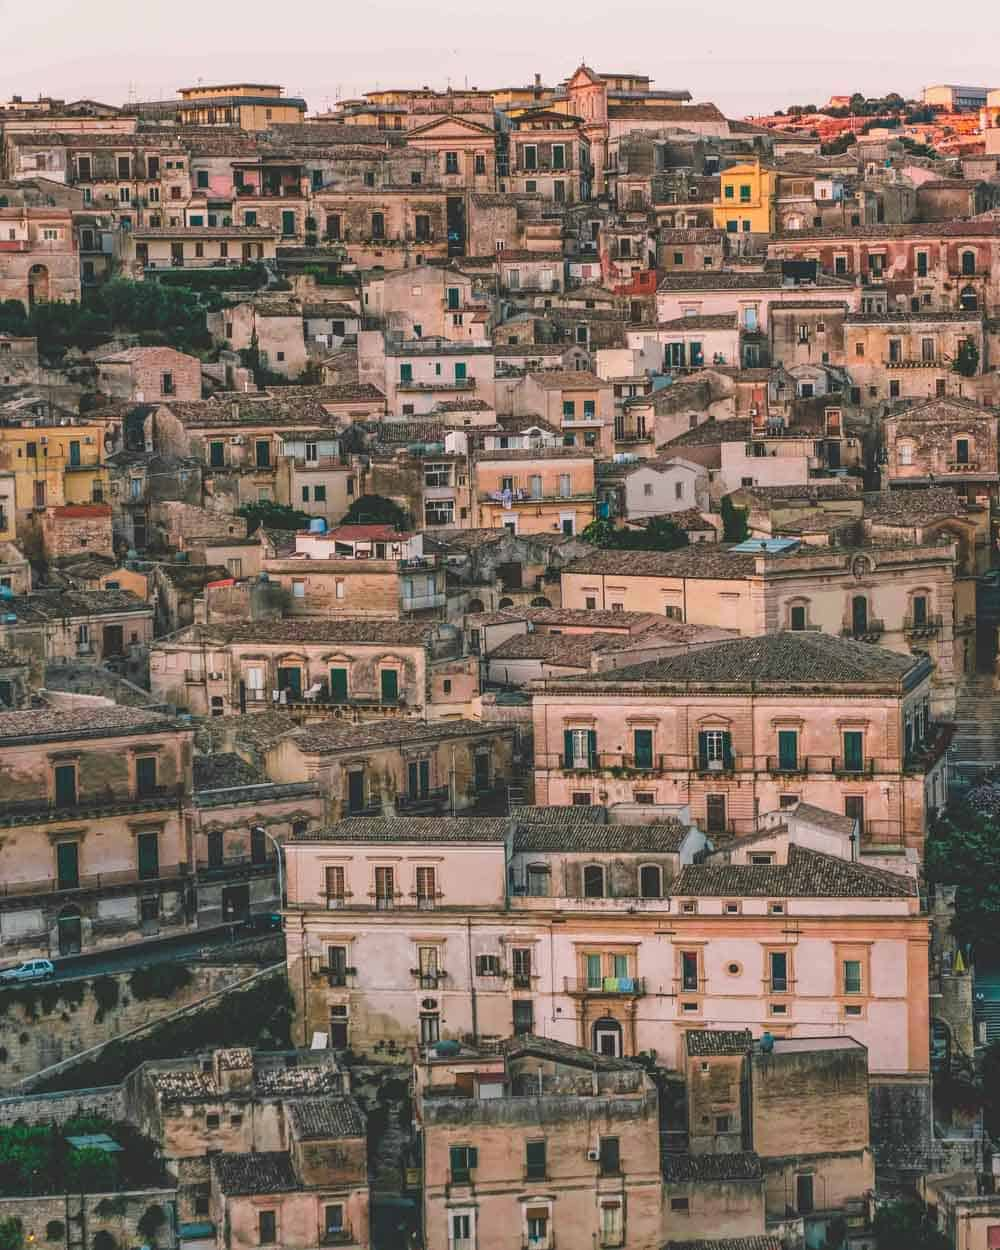 12 Best Cities in Italy to Visit This Year! Belvedere, Modica, Italy made the top of our list. Check out the 12 other best cities in Italy on www.avenlylane.com #AVENLYLANE #AVENLYLANETRAVEL #italy #italyvacations #venice #veniceitaly #beautifulplaces #travelinspiration